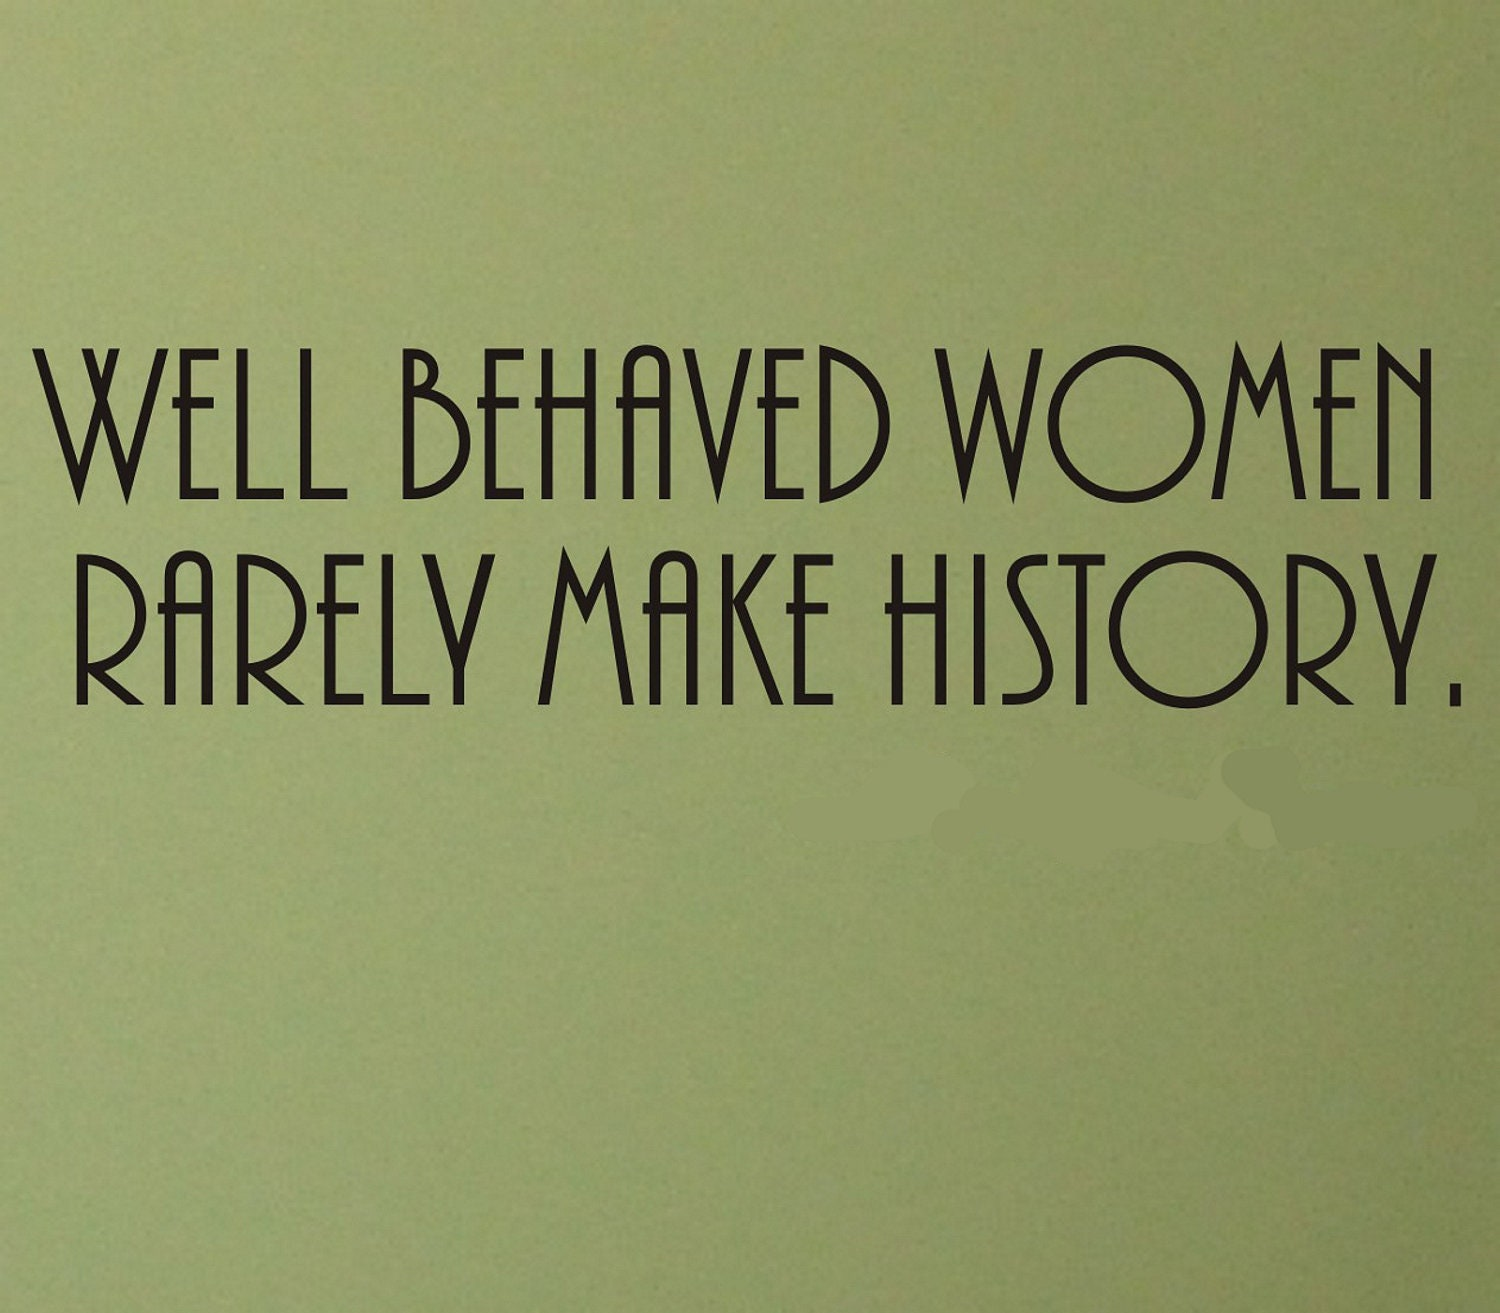 Women Thoughts Quotes: Well Behaved Women Rarely Make History Wall Decal Removable